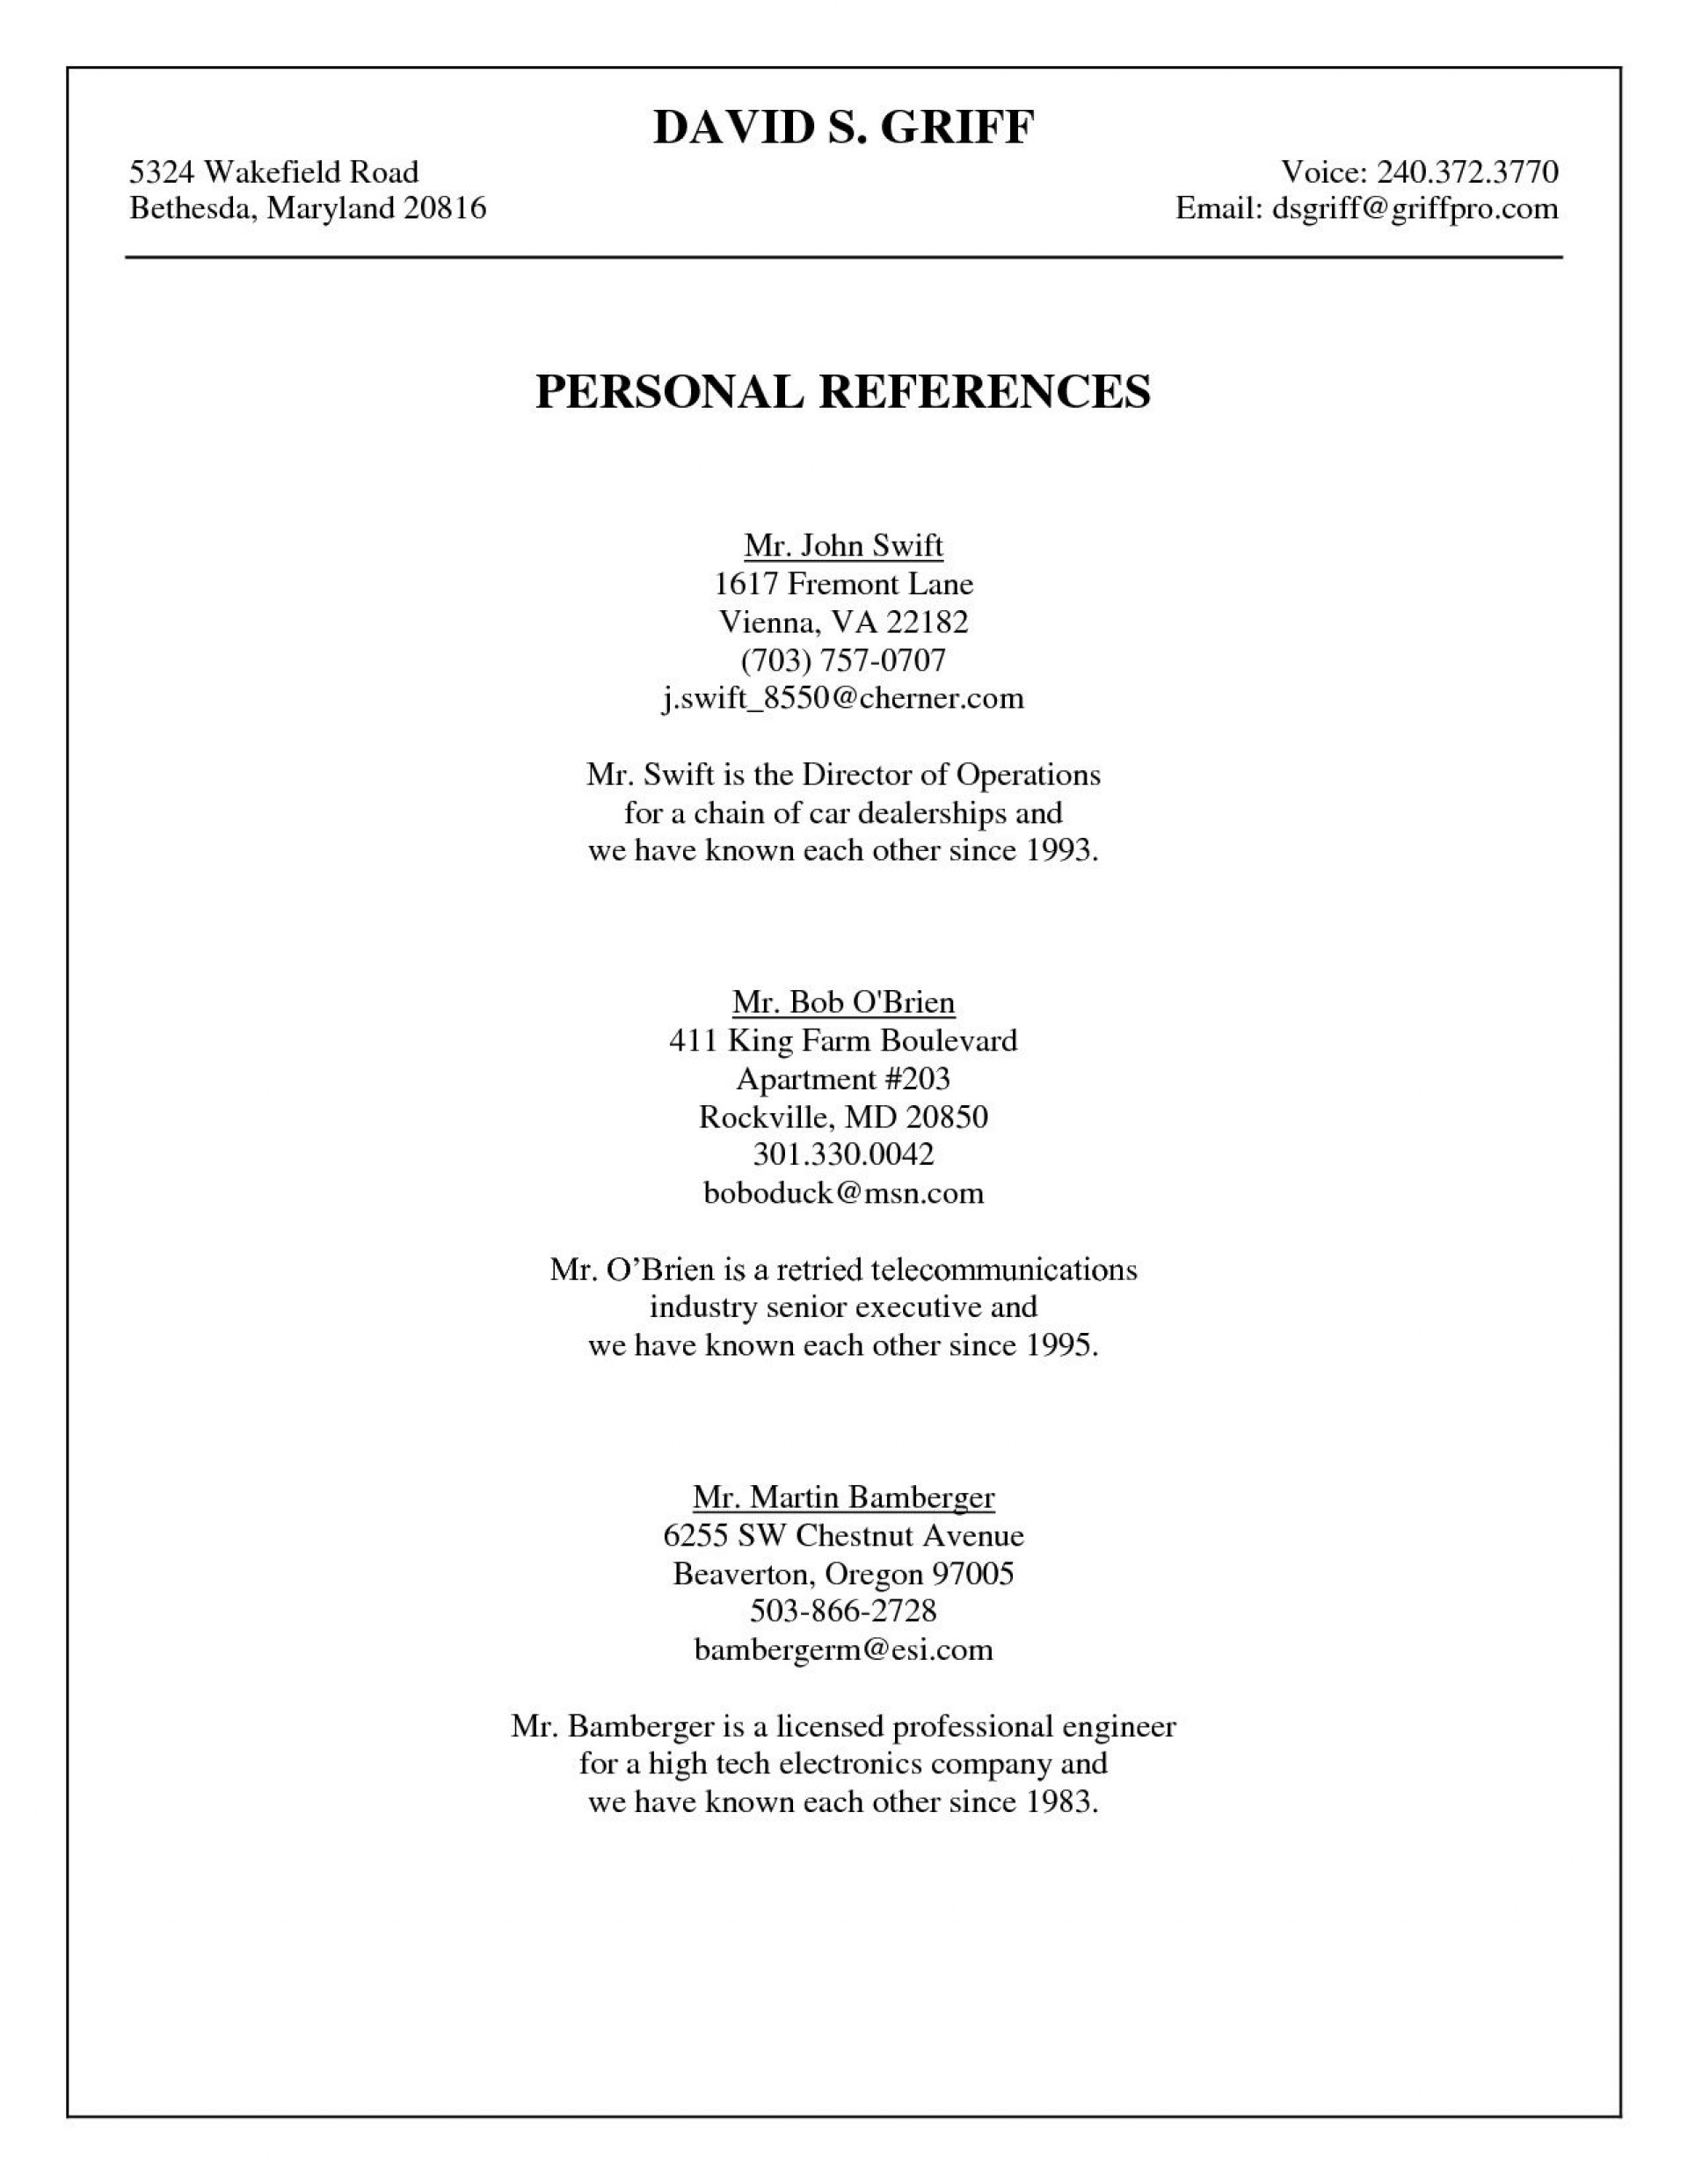 009 Striking Professional Reference List Template Word High Resolution  Free1920